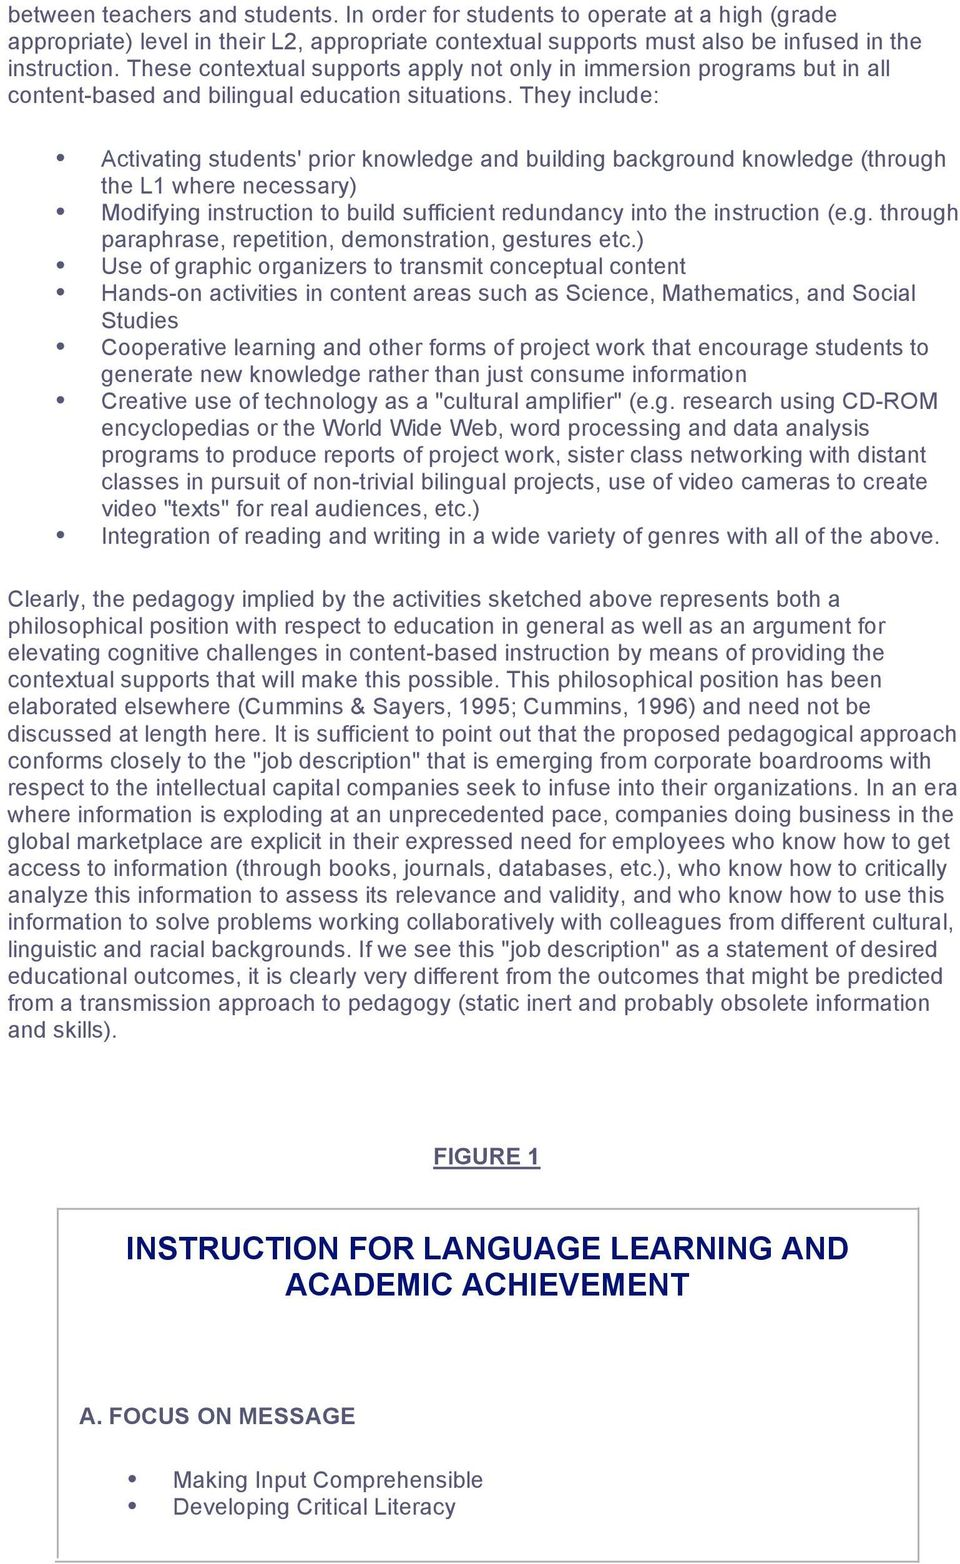 They include: Activating students' prior knowledge and building background knowledge (through the L1 where necessary) Modifying instruction to build sufficient redundancy into the instruction (e.g. through paraphrase, repetition, demonstration, gestures etc.